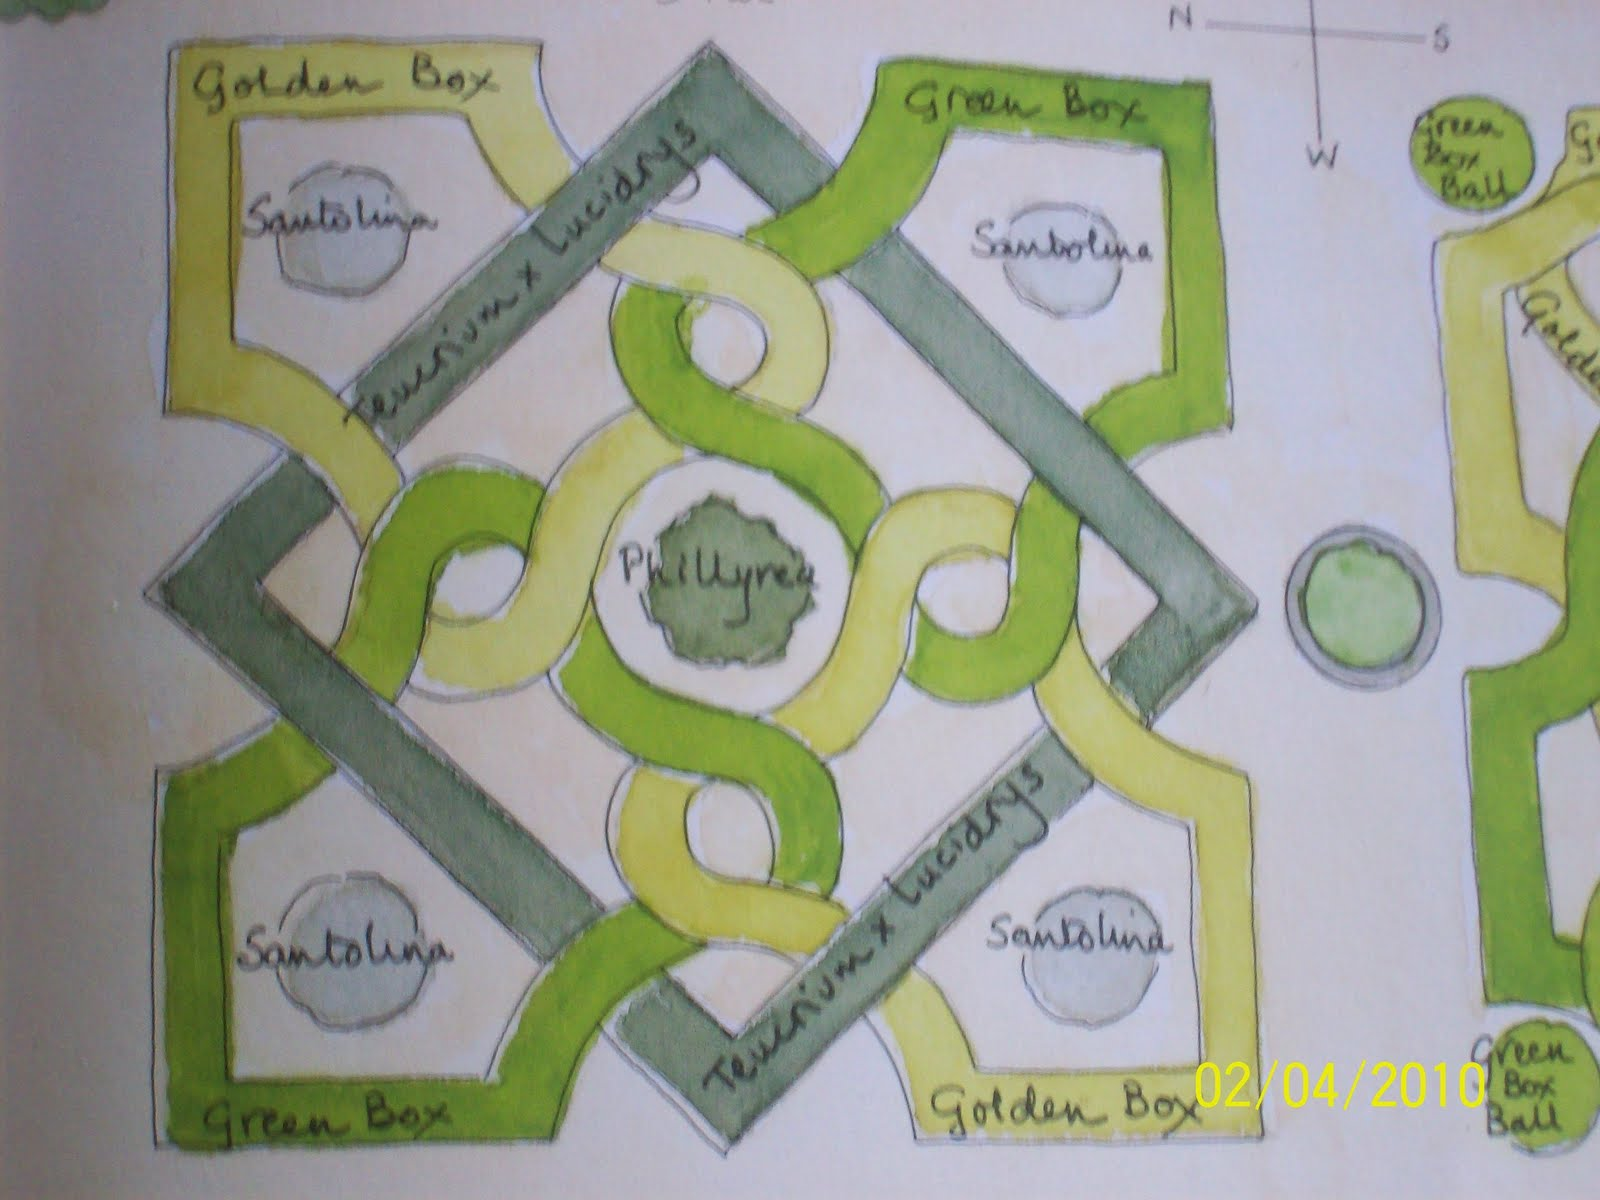 Garden designs for box parterres, knot gardens, hedges and topiary